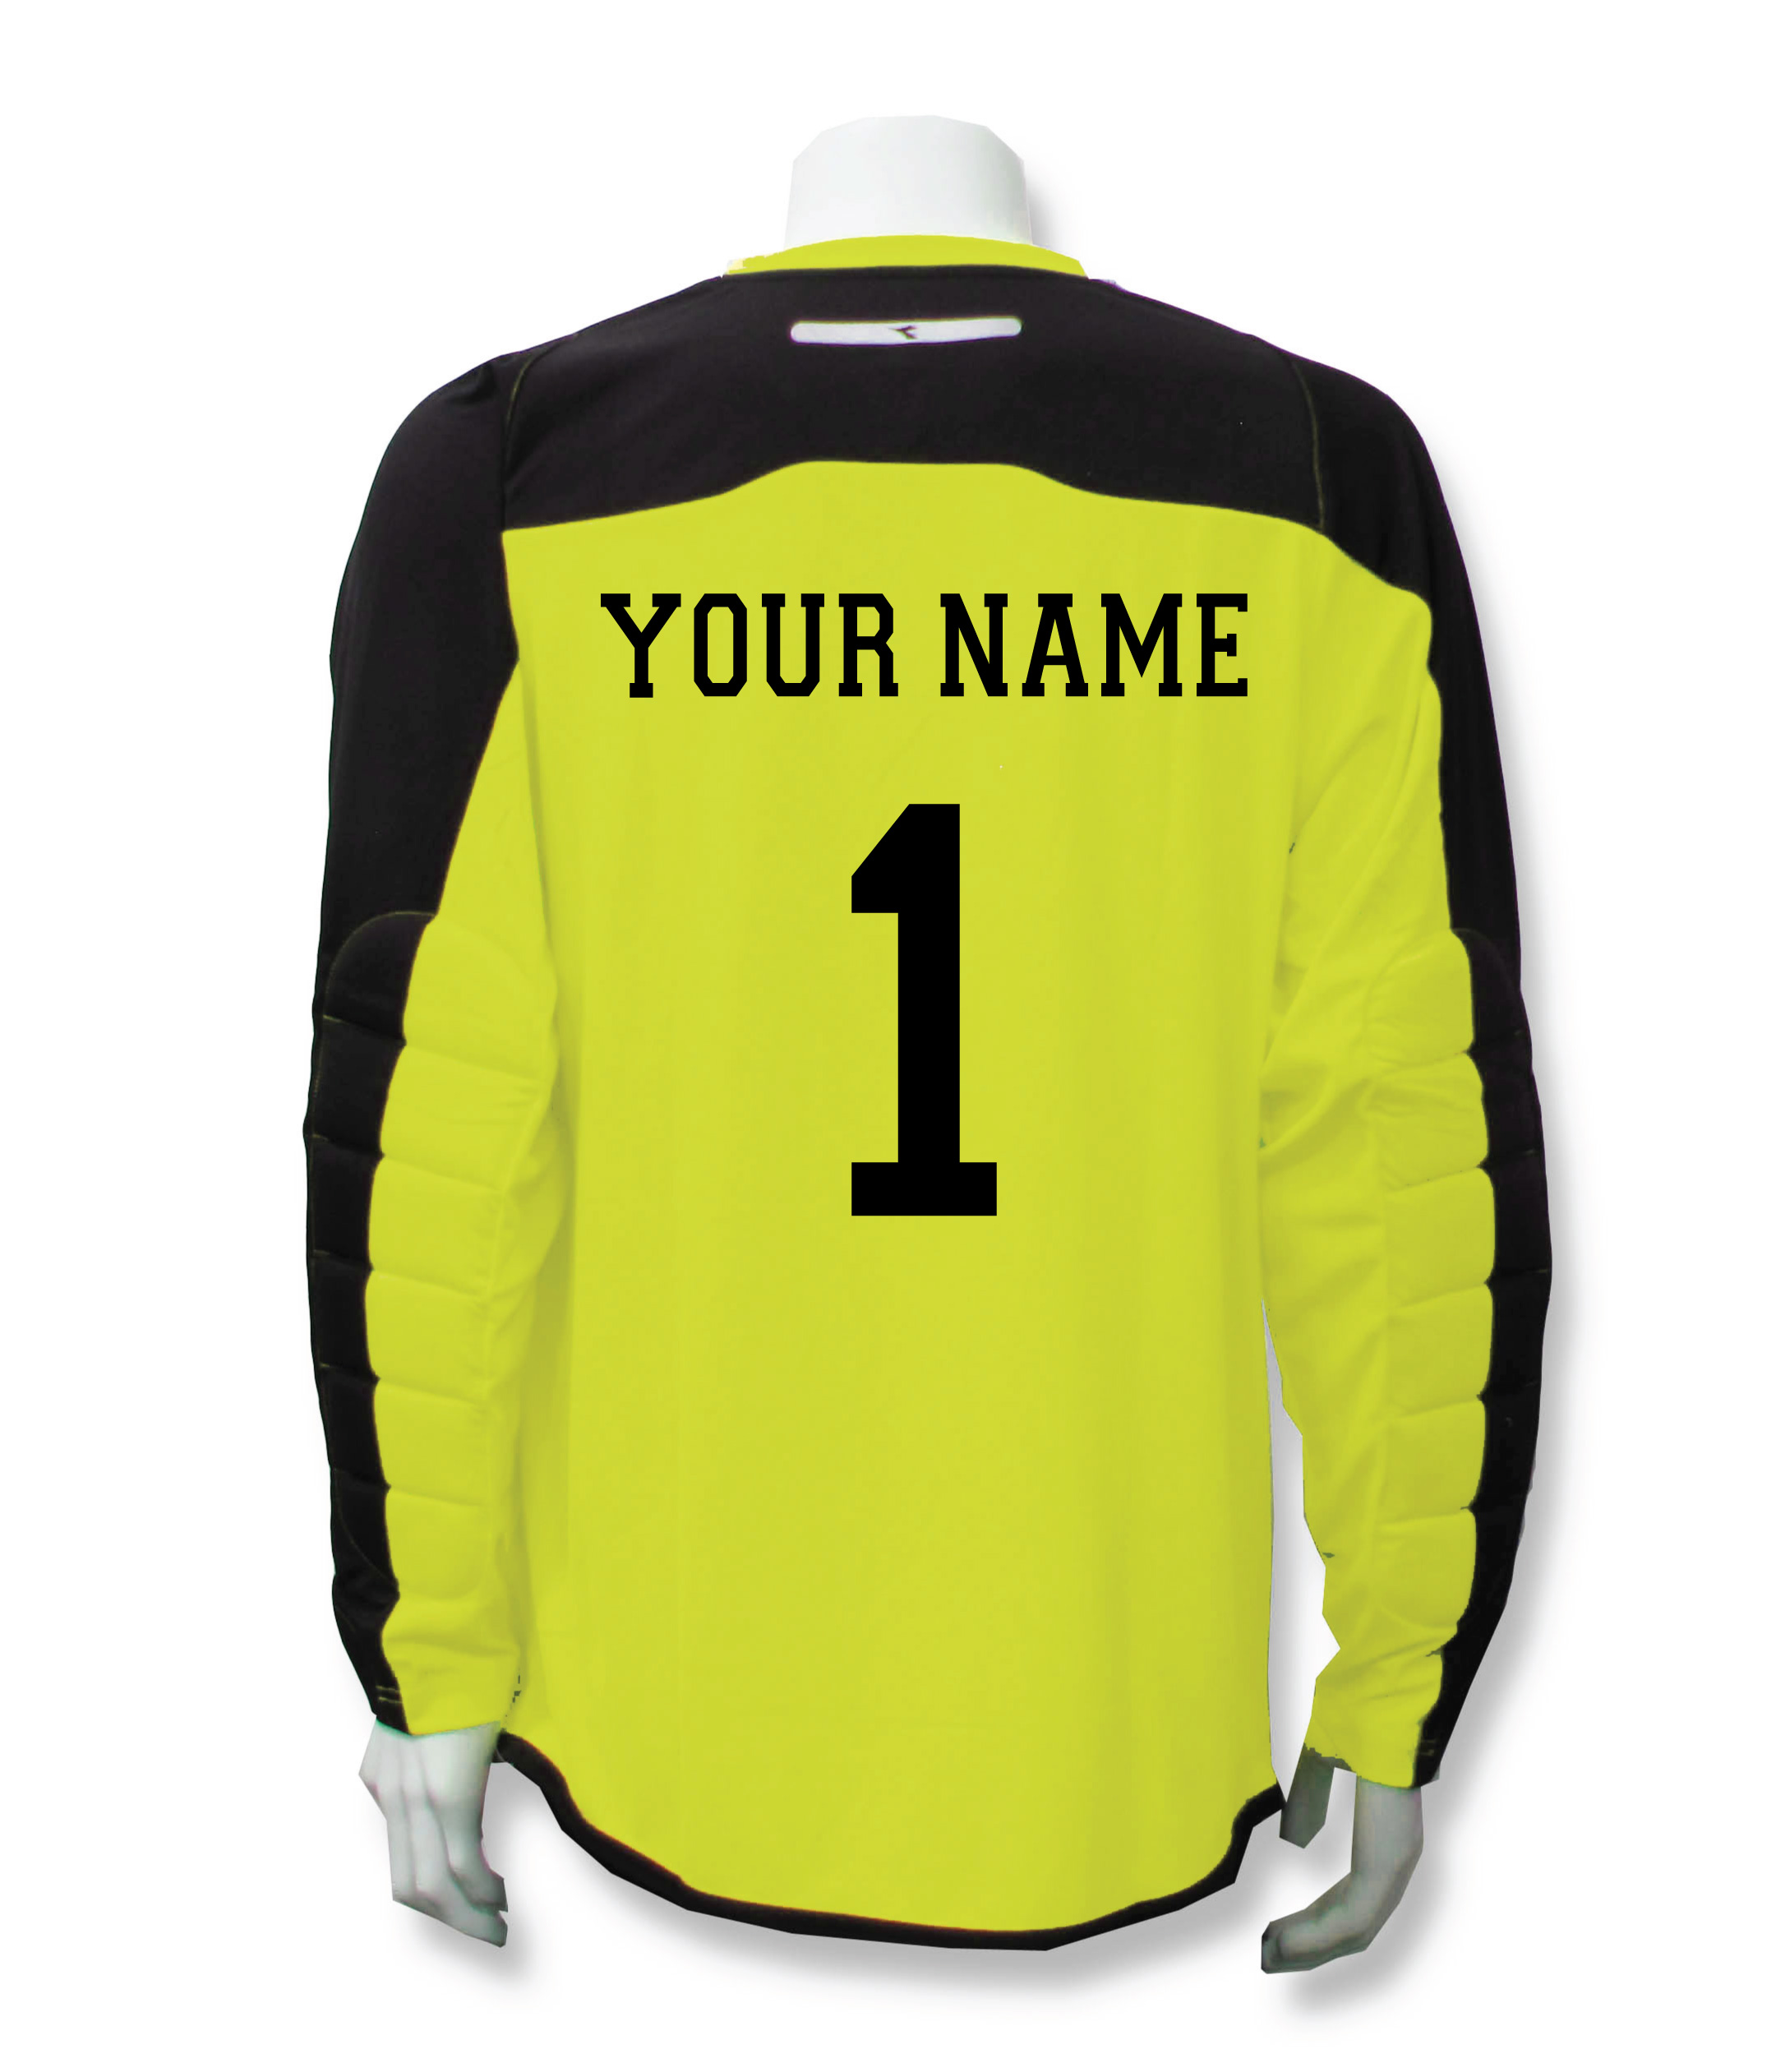 Diadora Enzo keeper jersey in Matchwinner Yellow, with name and number on back, by Code Four Athletics